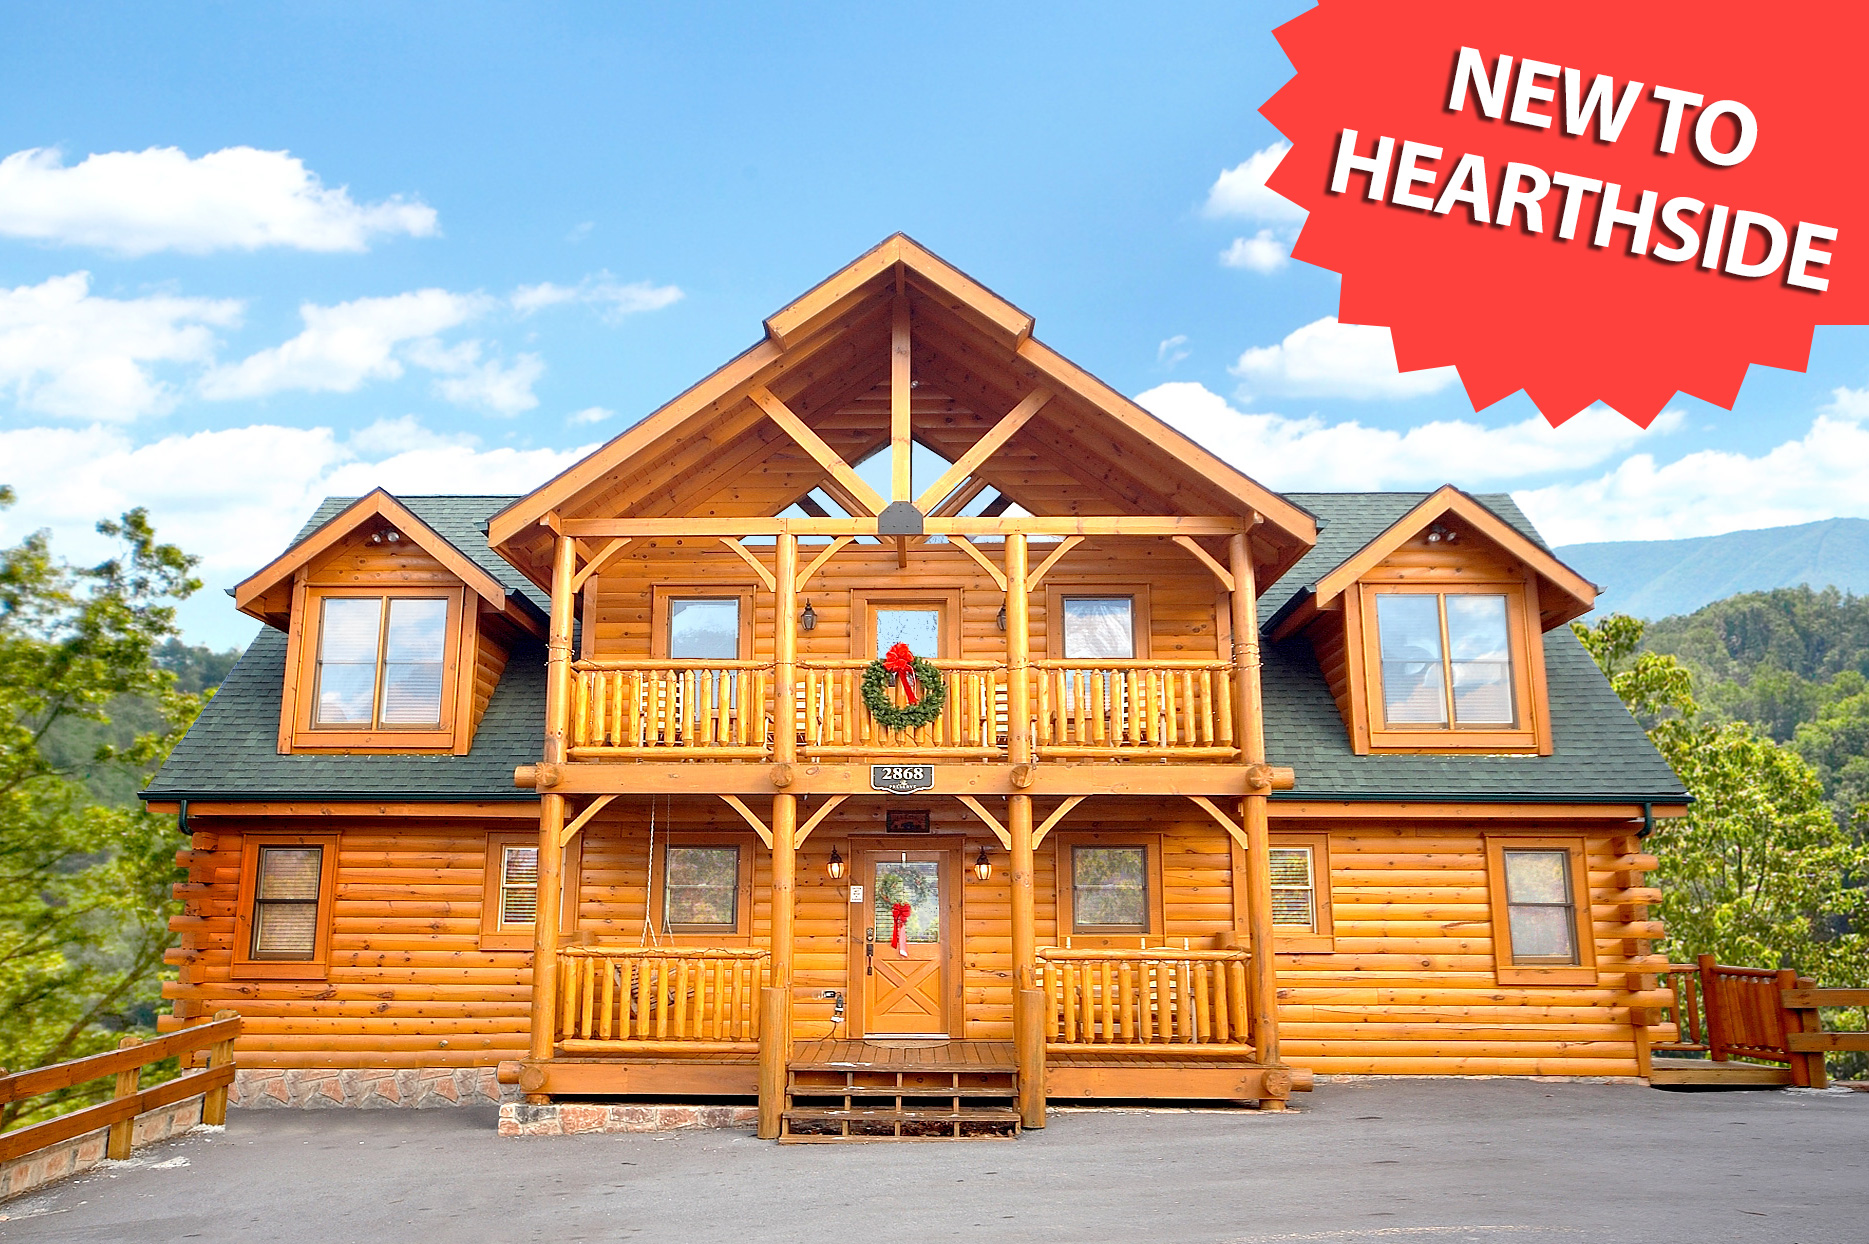 BEAR TRAIL LODGE - 5 BEDROOM cabin located in Sevier County.